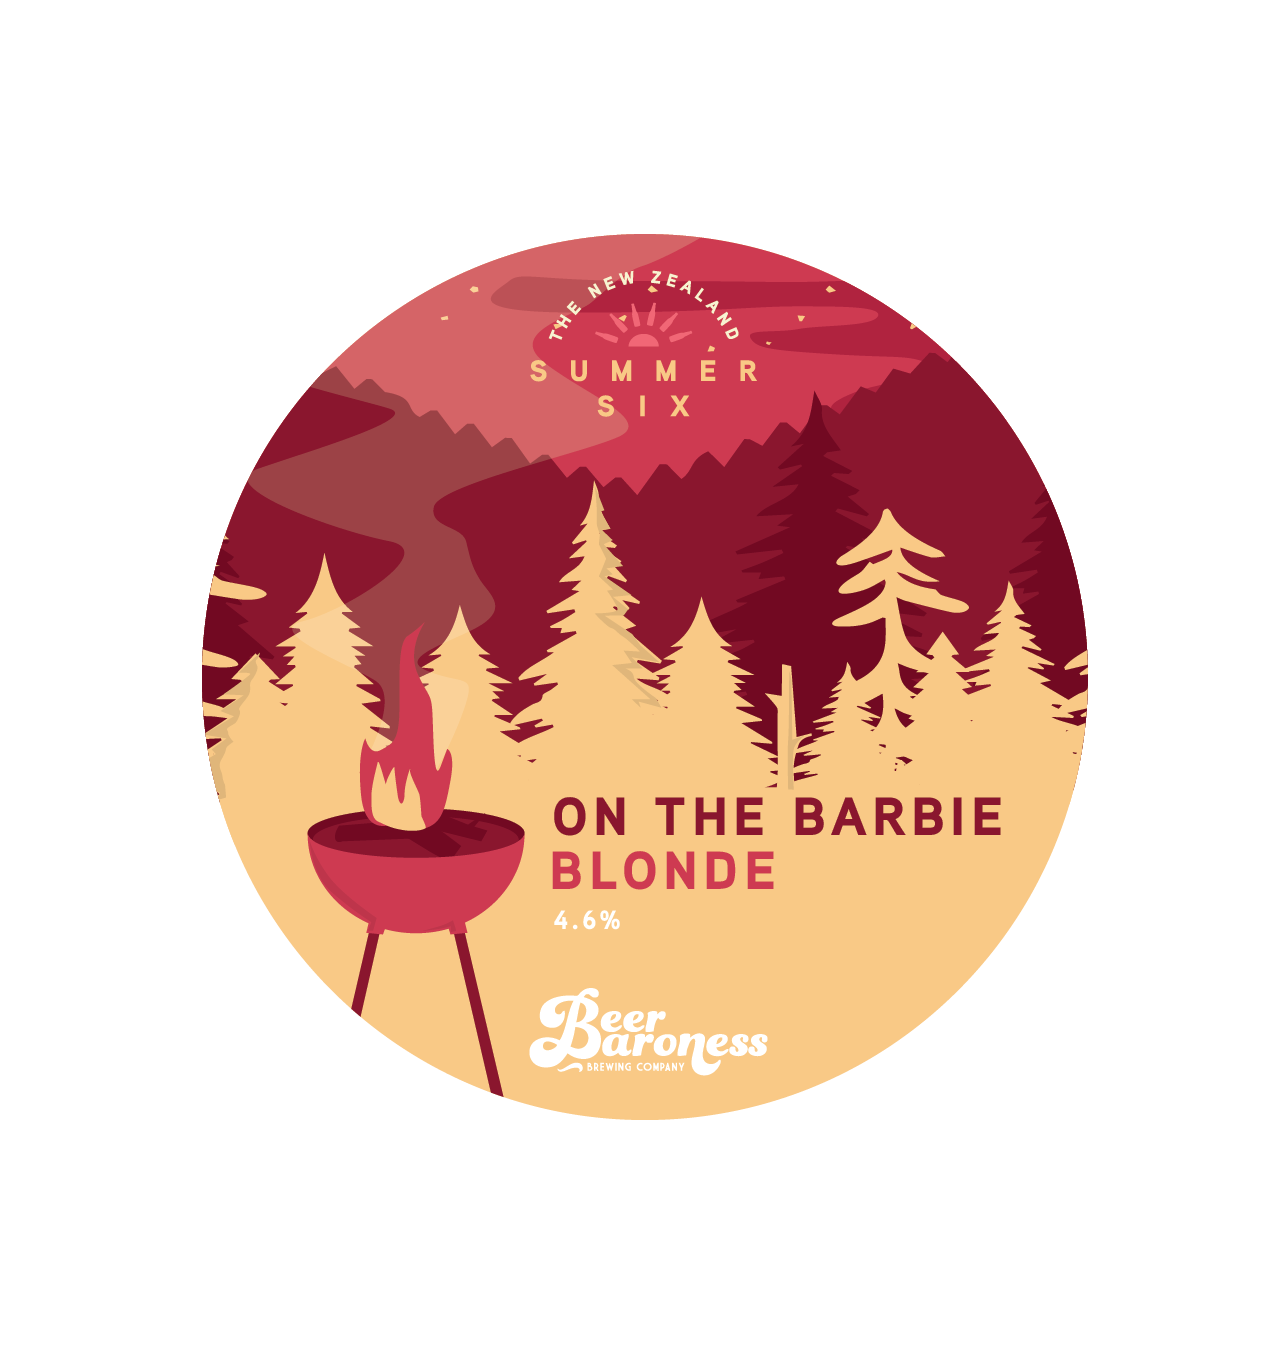 Beer Baroness Summer Six - On the Barbie Blonde - Tap Badge Cropped.png